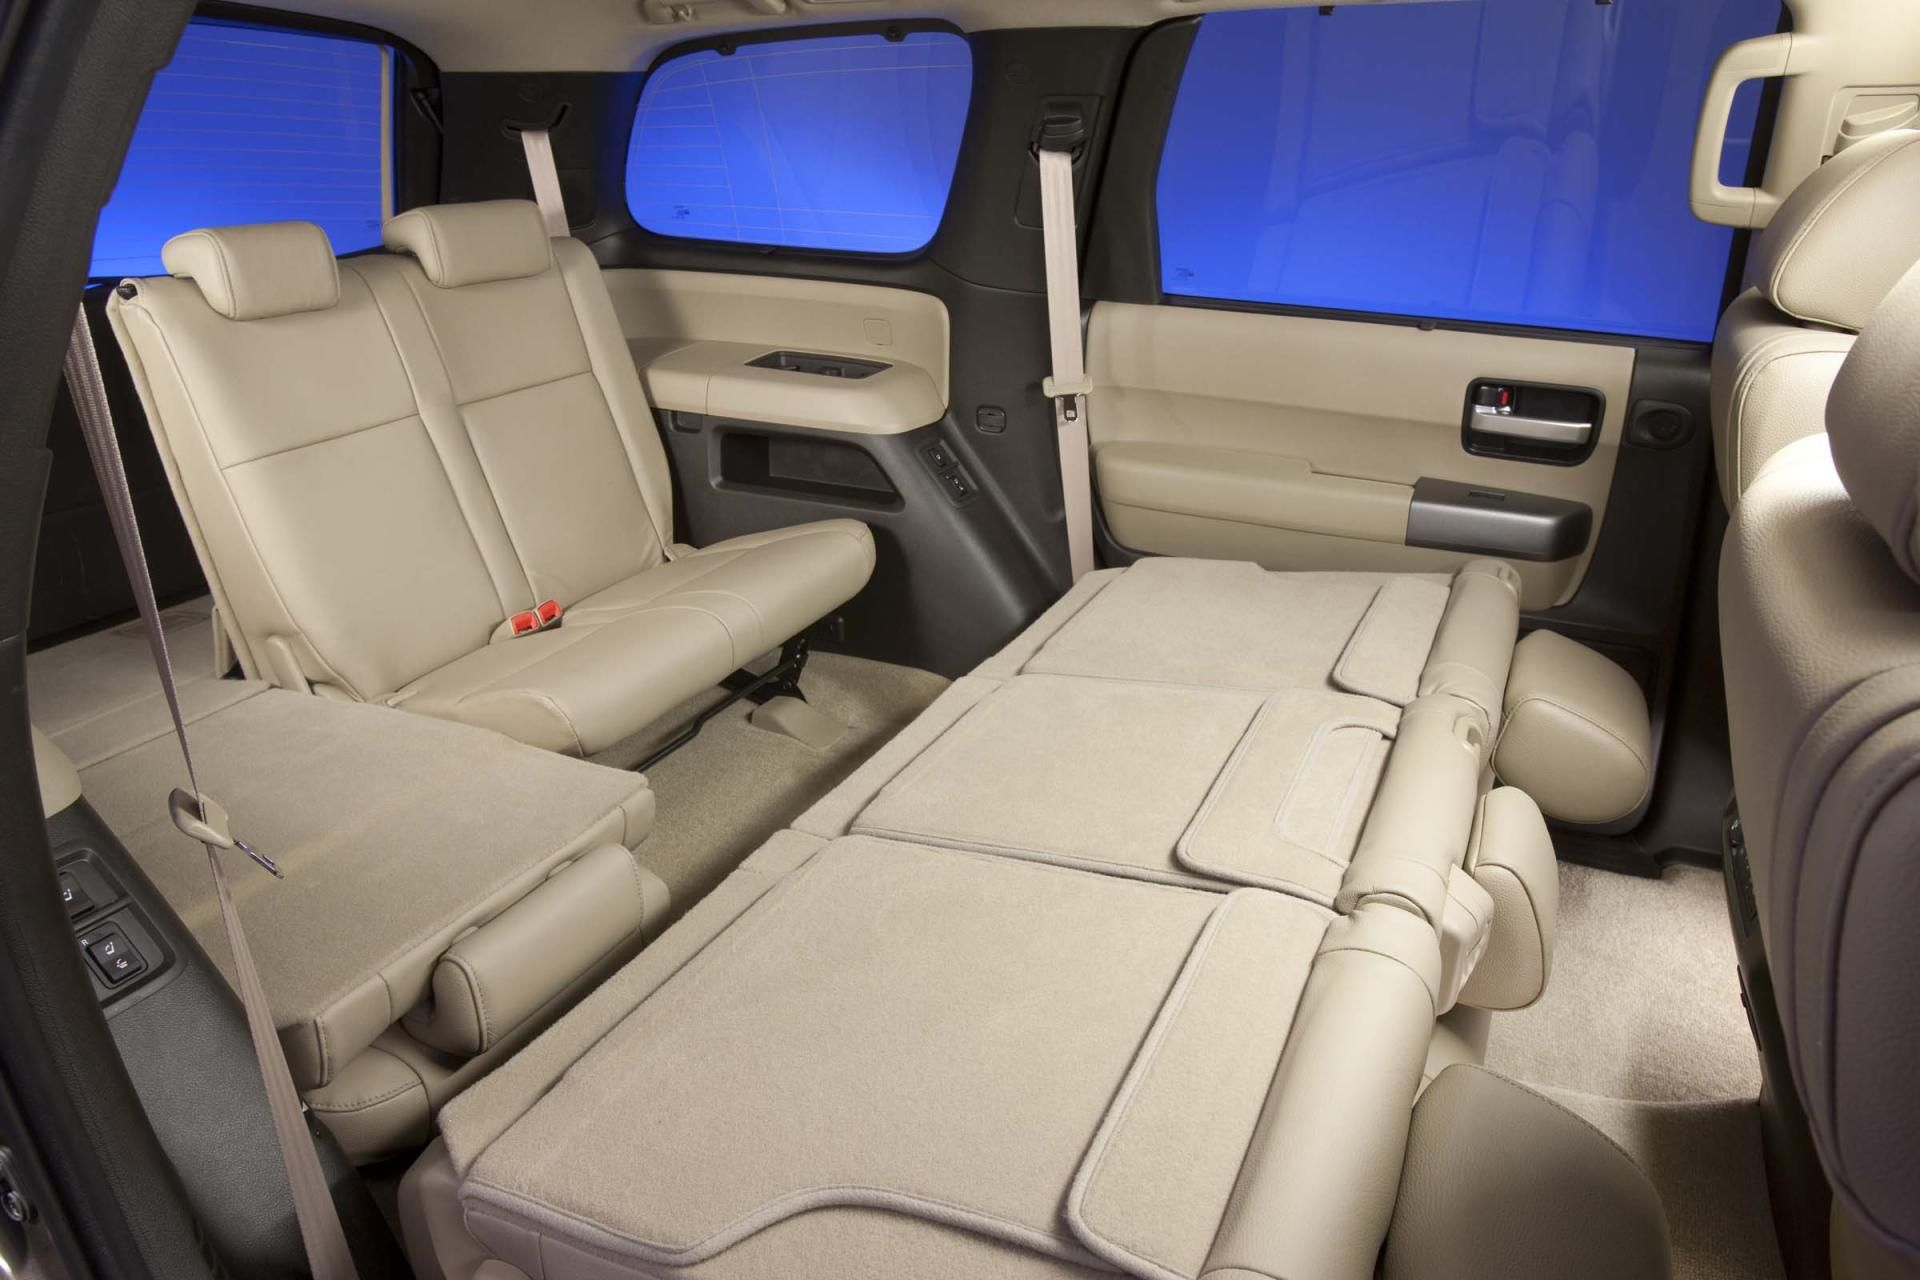 2014 Toyota Sequoia Interior Photo